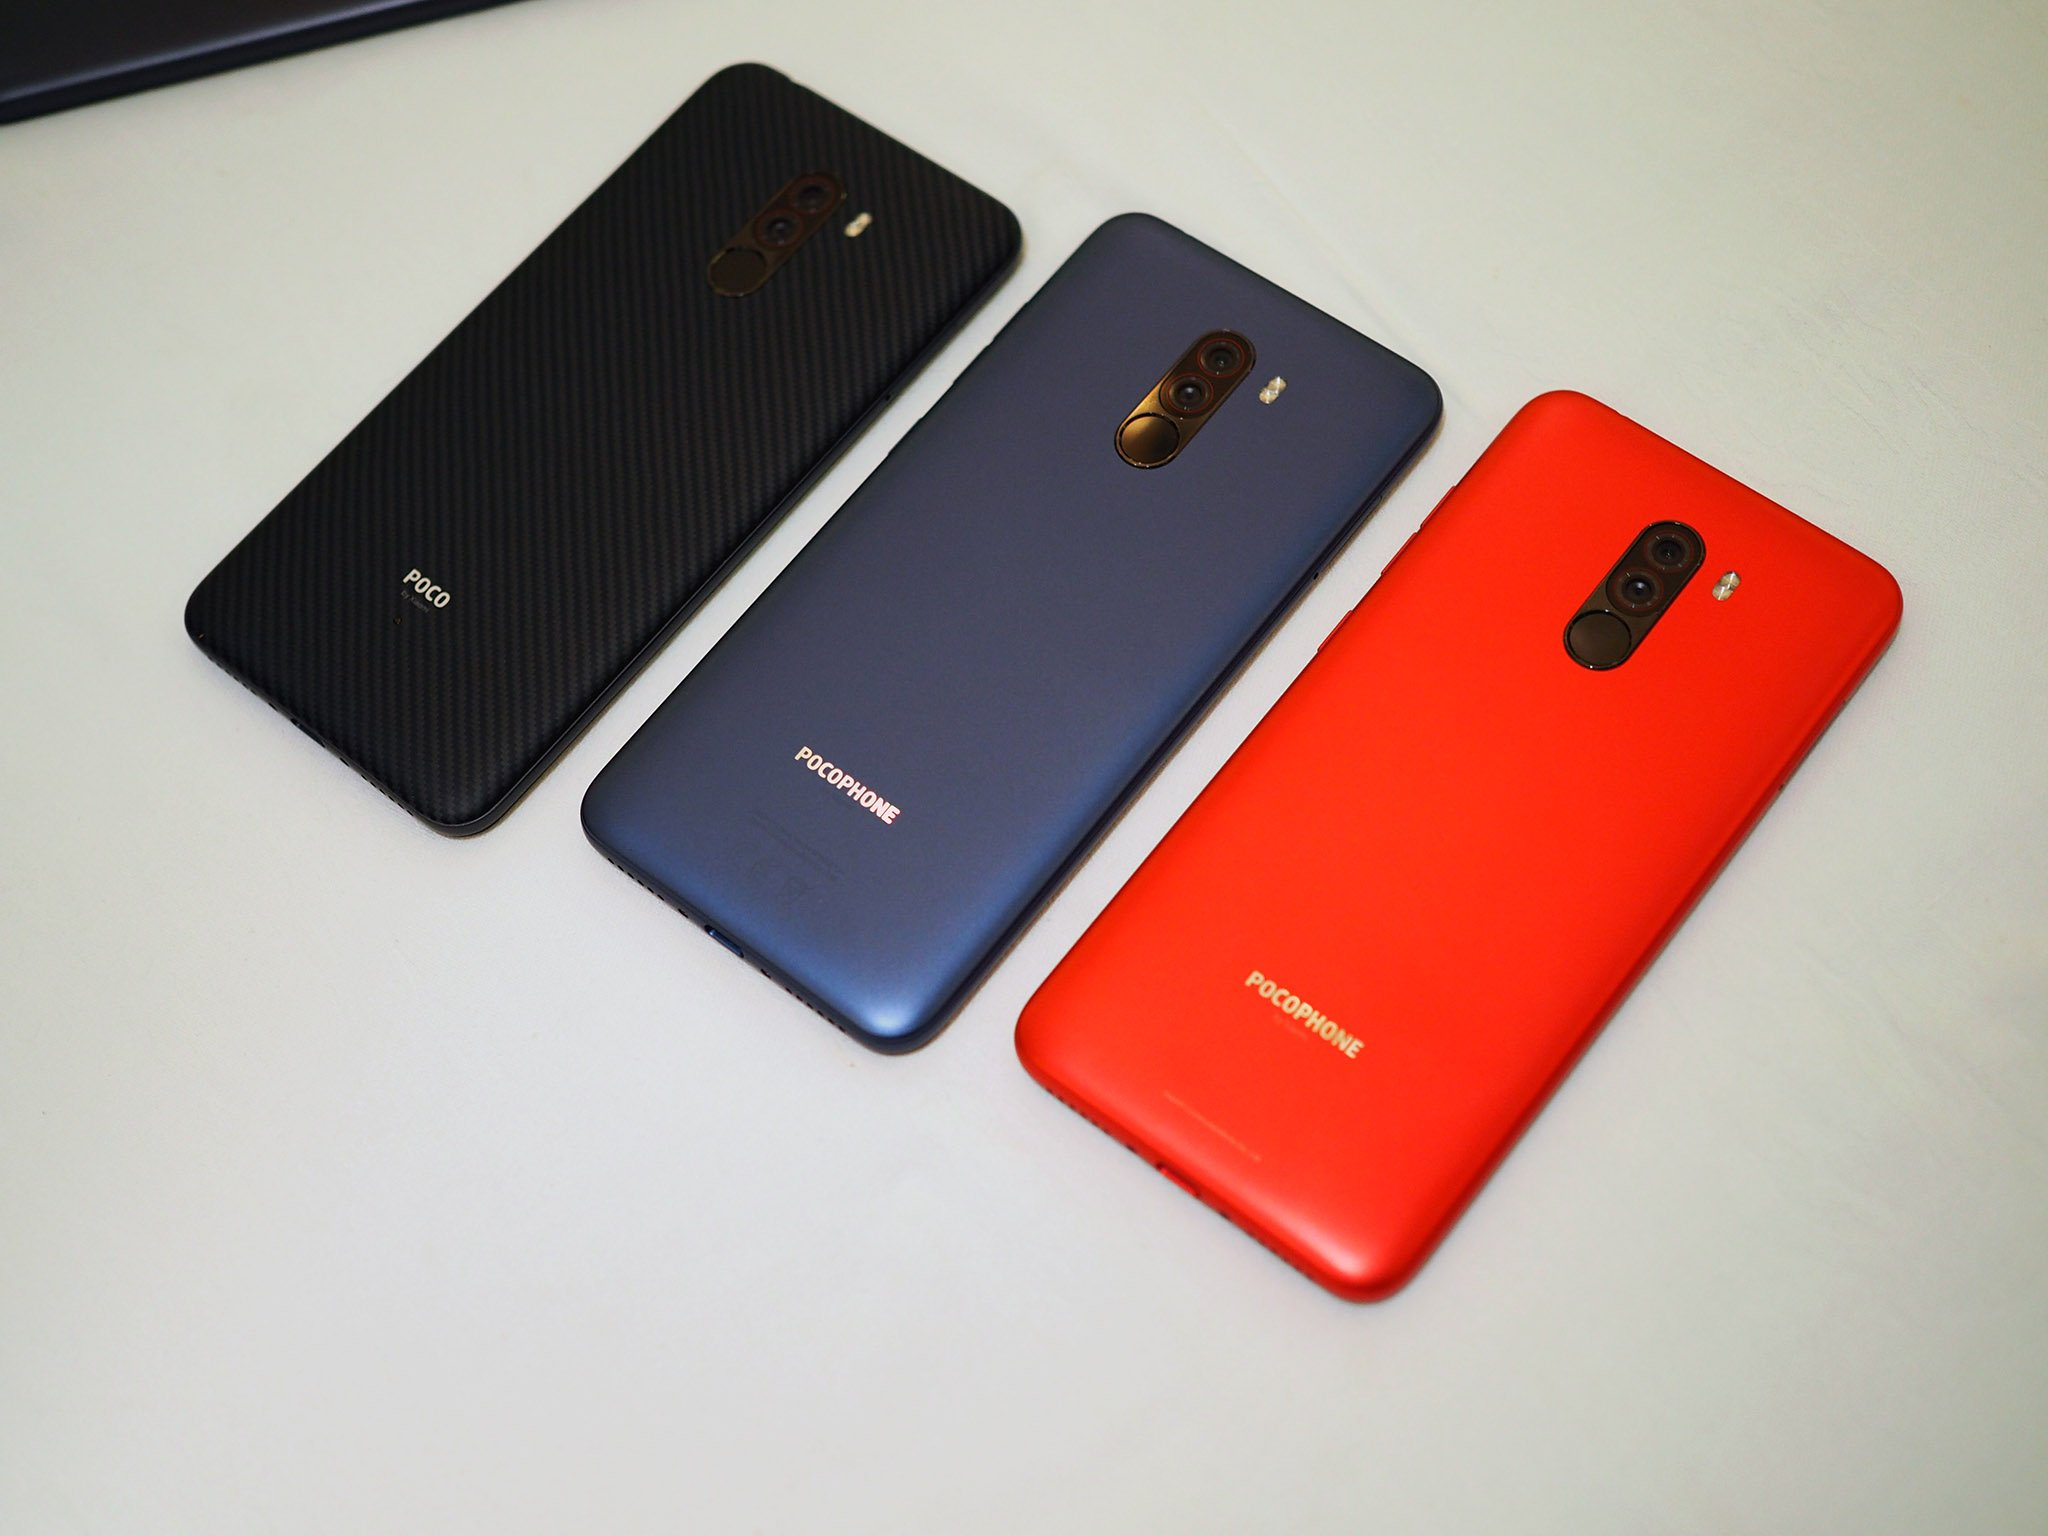 Bad Set Poco Poco F1 Review Incredible Performance At An Unbeatable Price